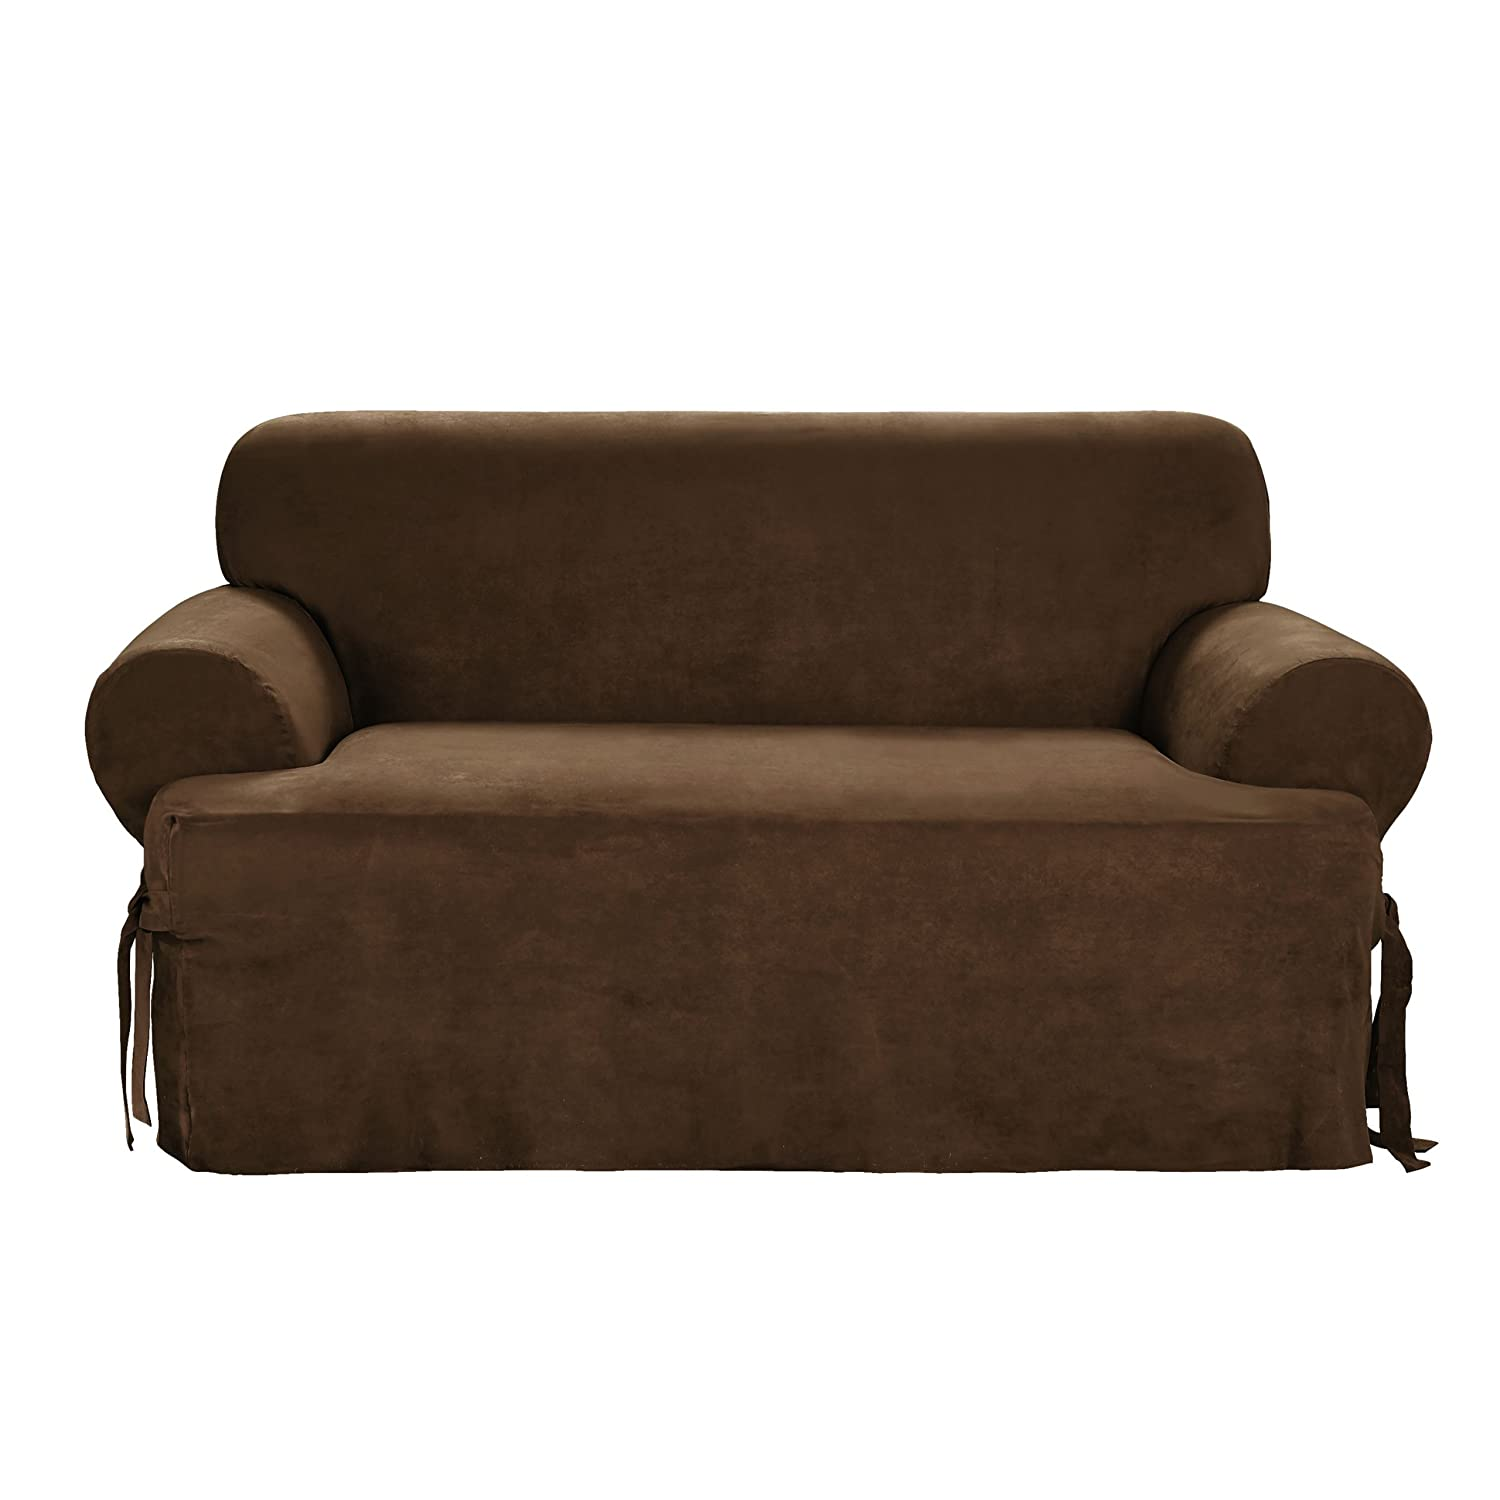 Amazon.com: Sure Fit Soft Suede T Cushion   Sofa Slipcover   Chocolate  (SF34665): Home U0026 Kitchen Part 31